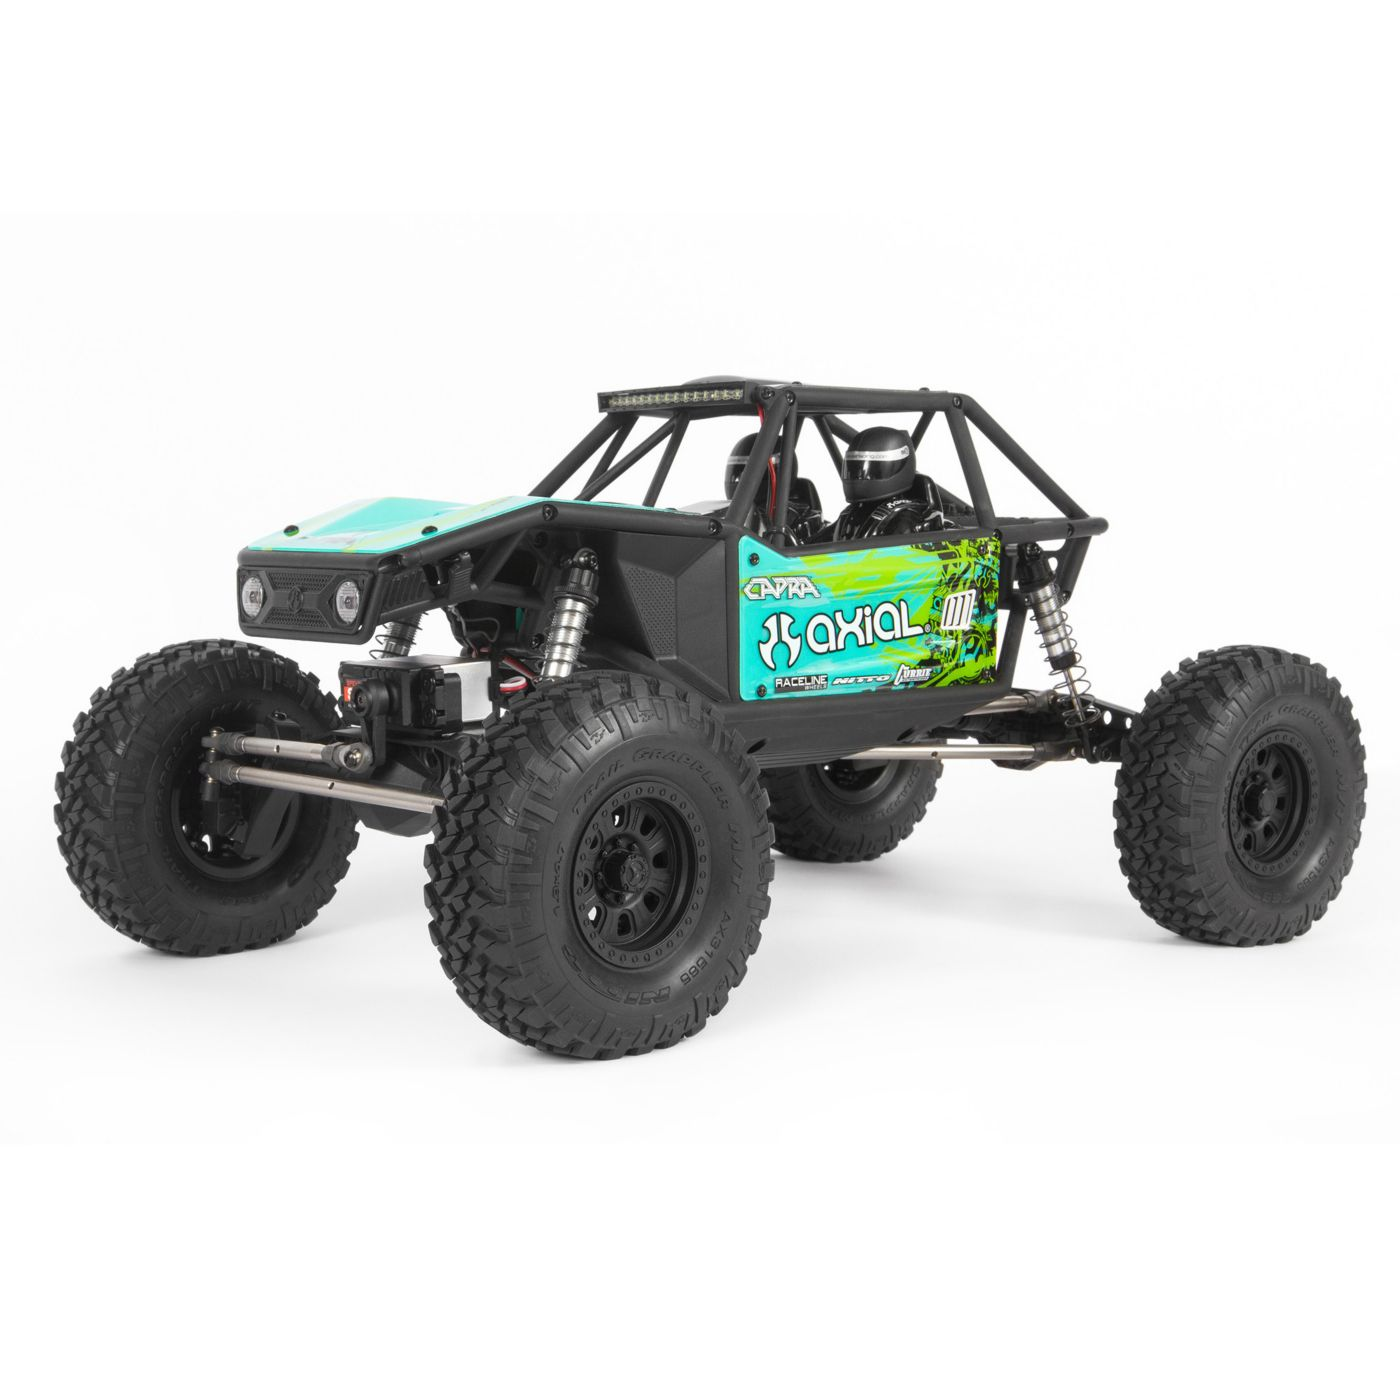 Axial Racing 1/10 Capra 1.9 Unlimited 4WD RTR Trail Buggy, Green